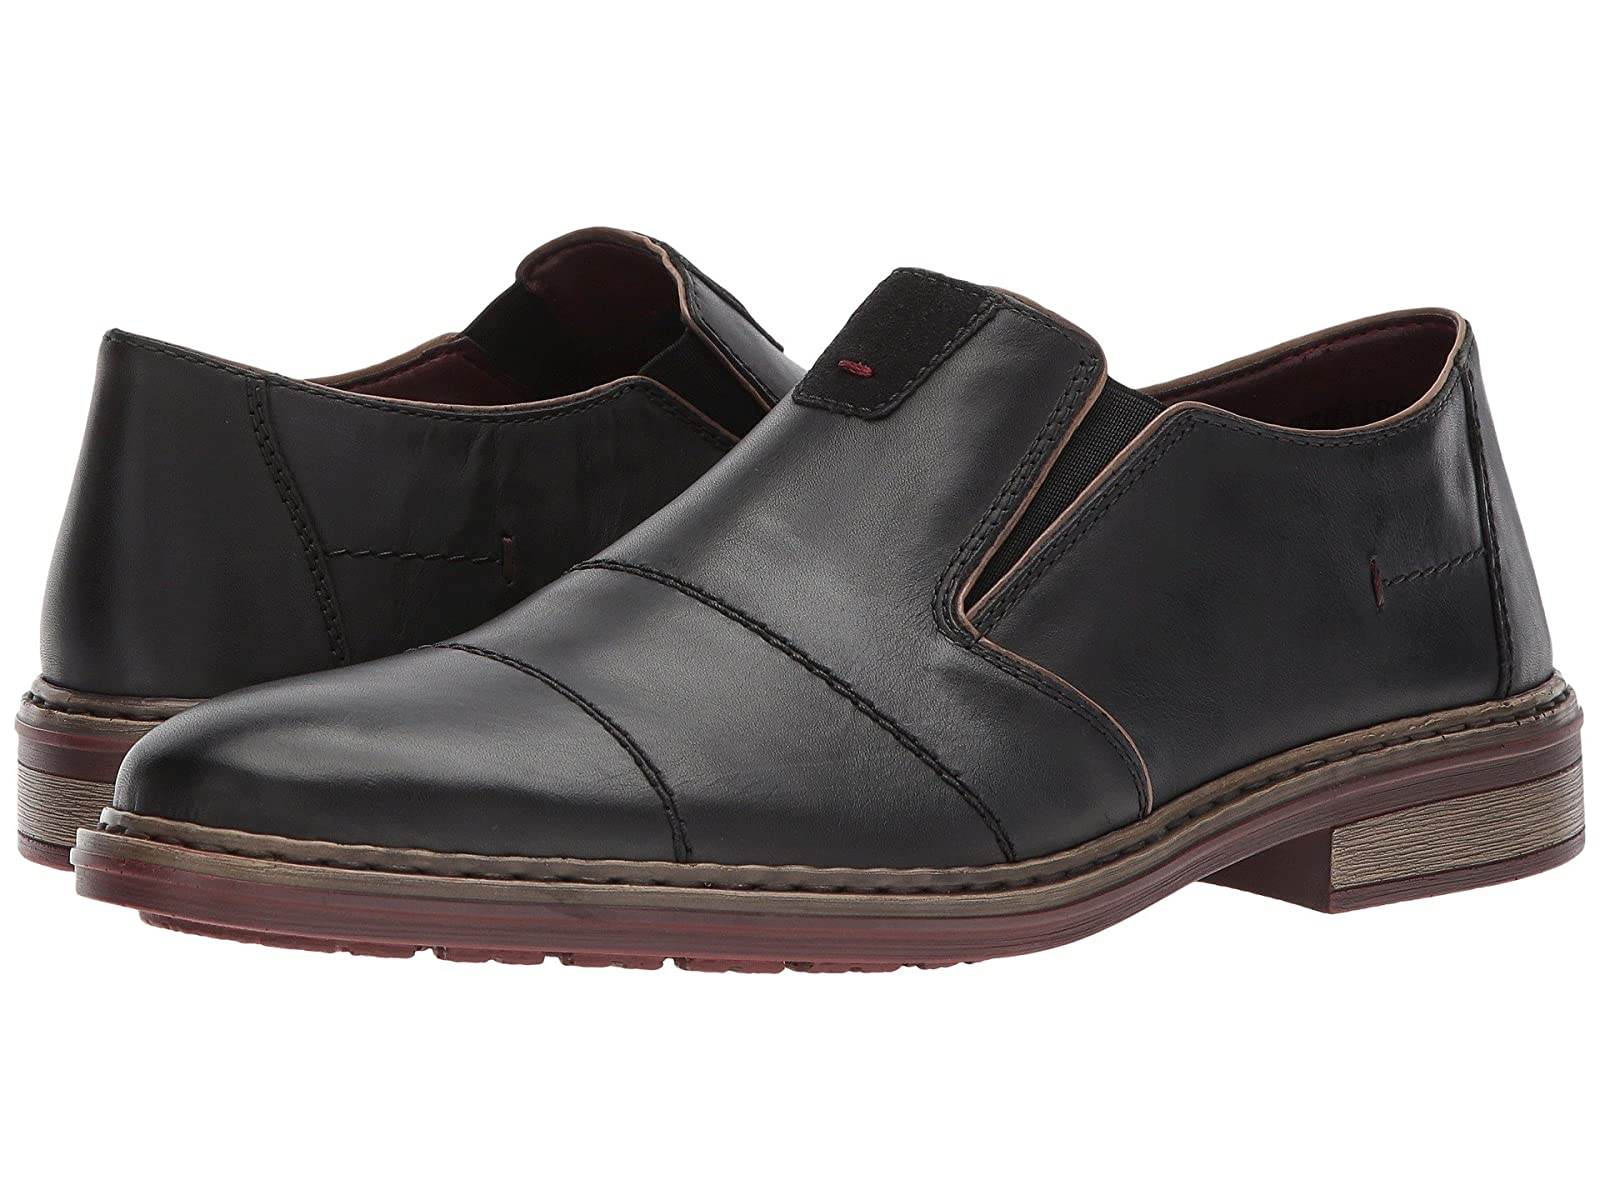 Rieker 17661 Dustin 61Cheap and distinctive eye-catching shoes